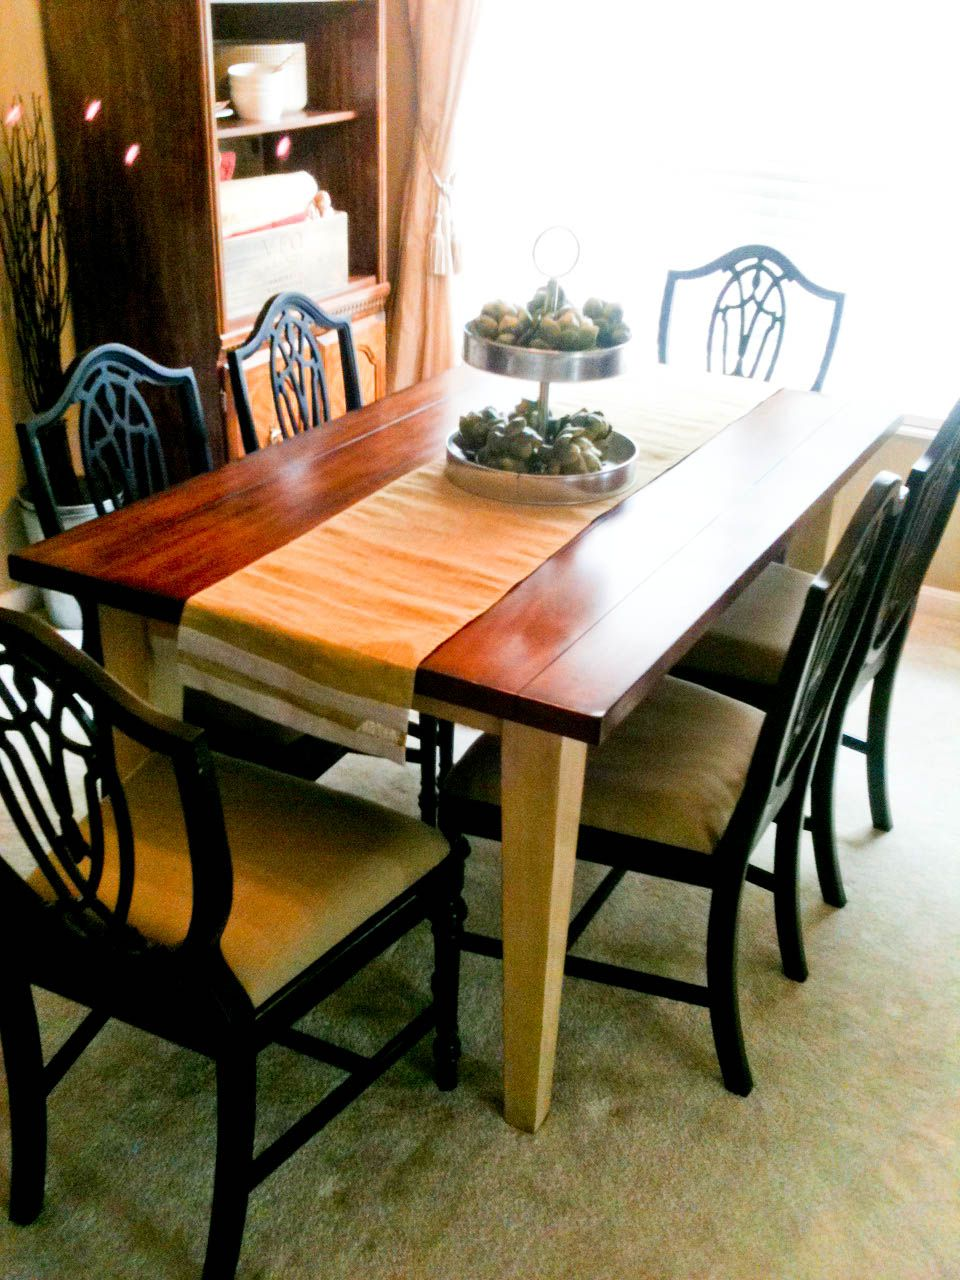 Dining set pier one apartamento pinterest for Pier 1 dining room pictures